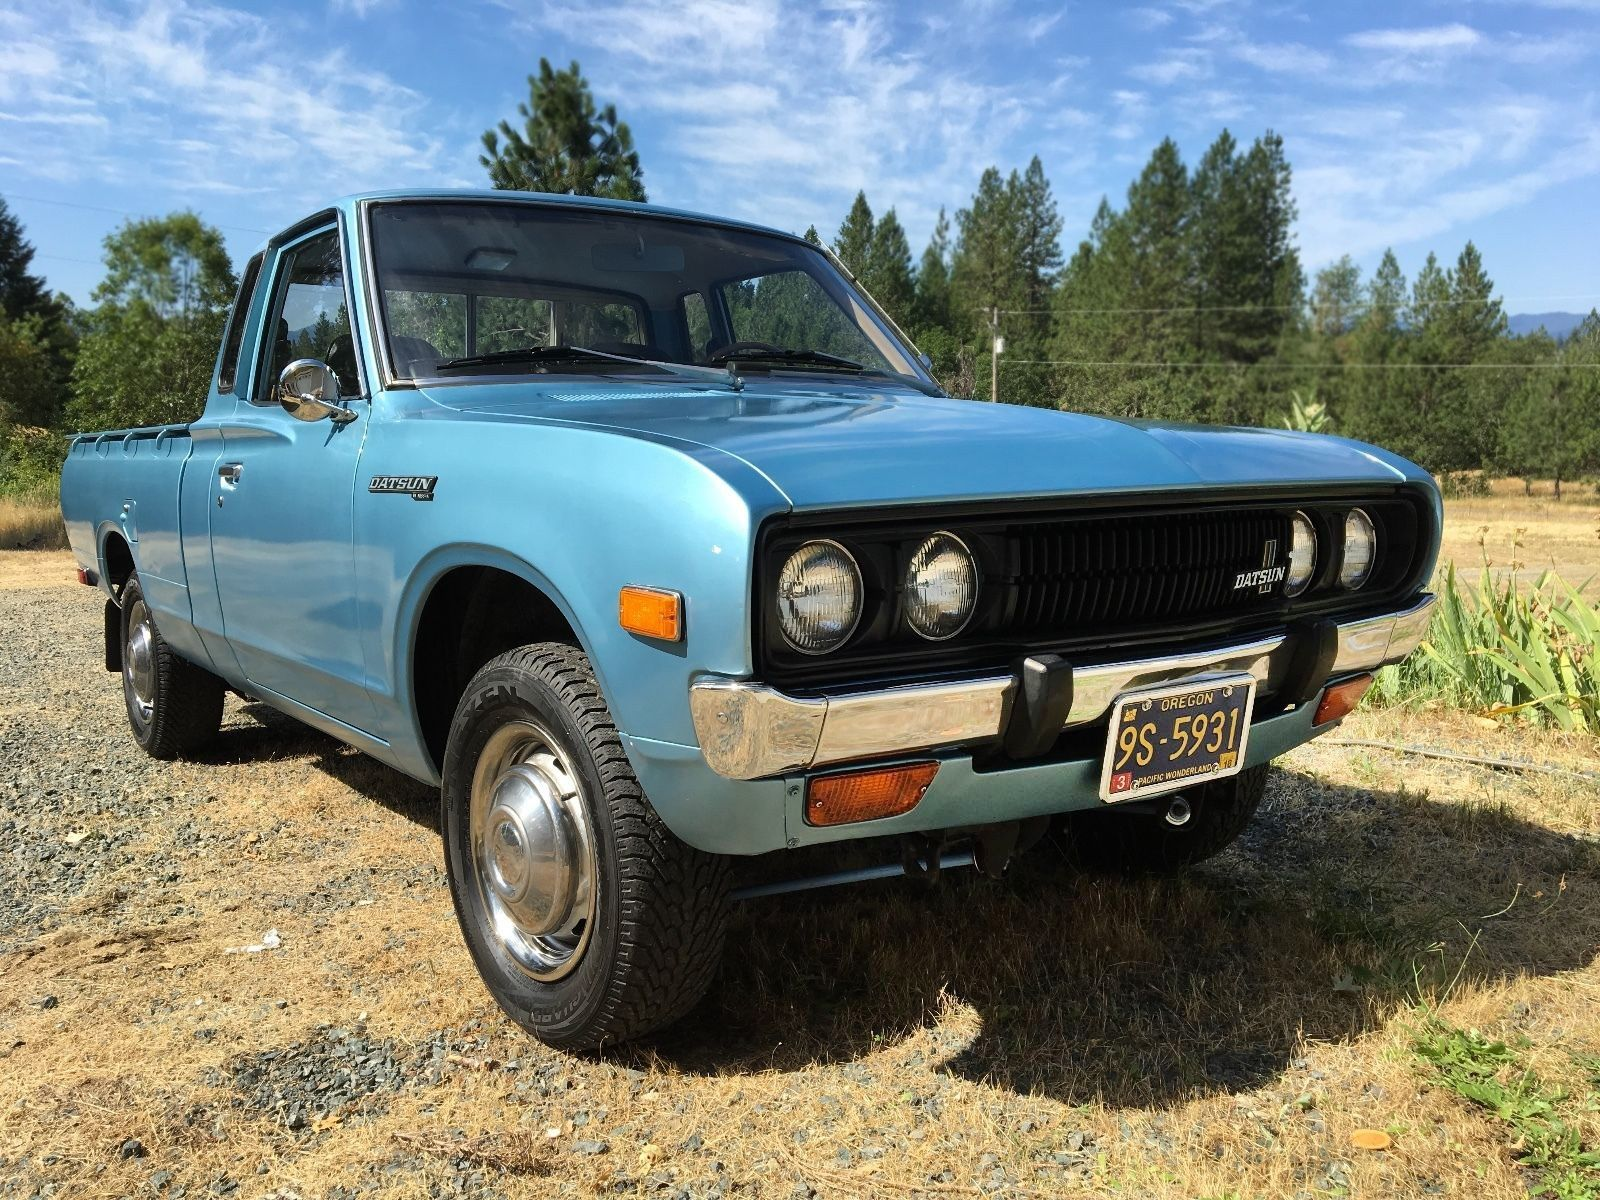 Restored King Cab 1979 Datsun 620 Datsun Pickup Datsun Datsun Car